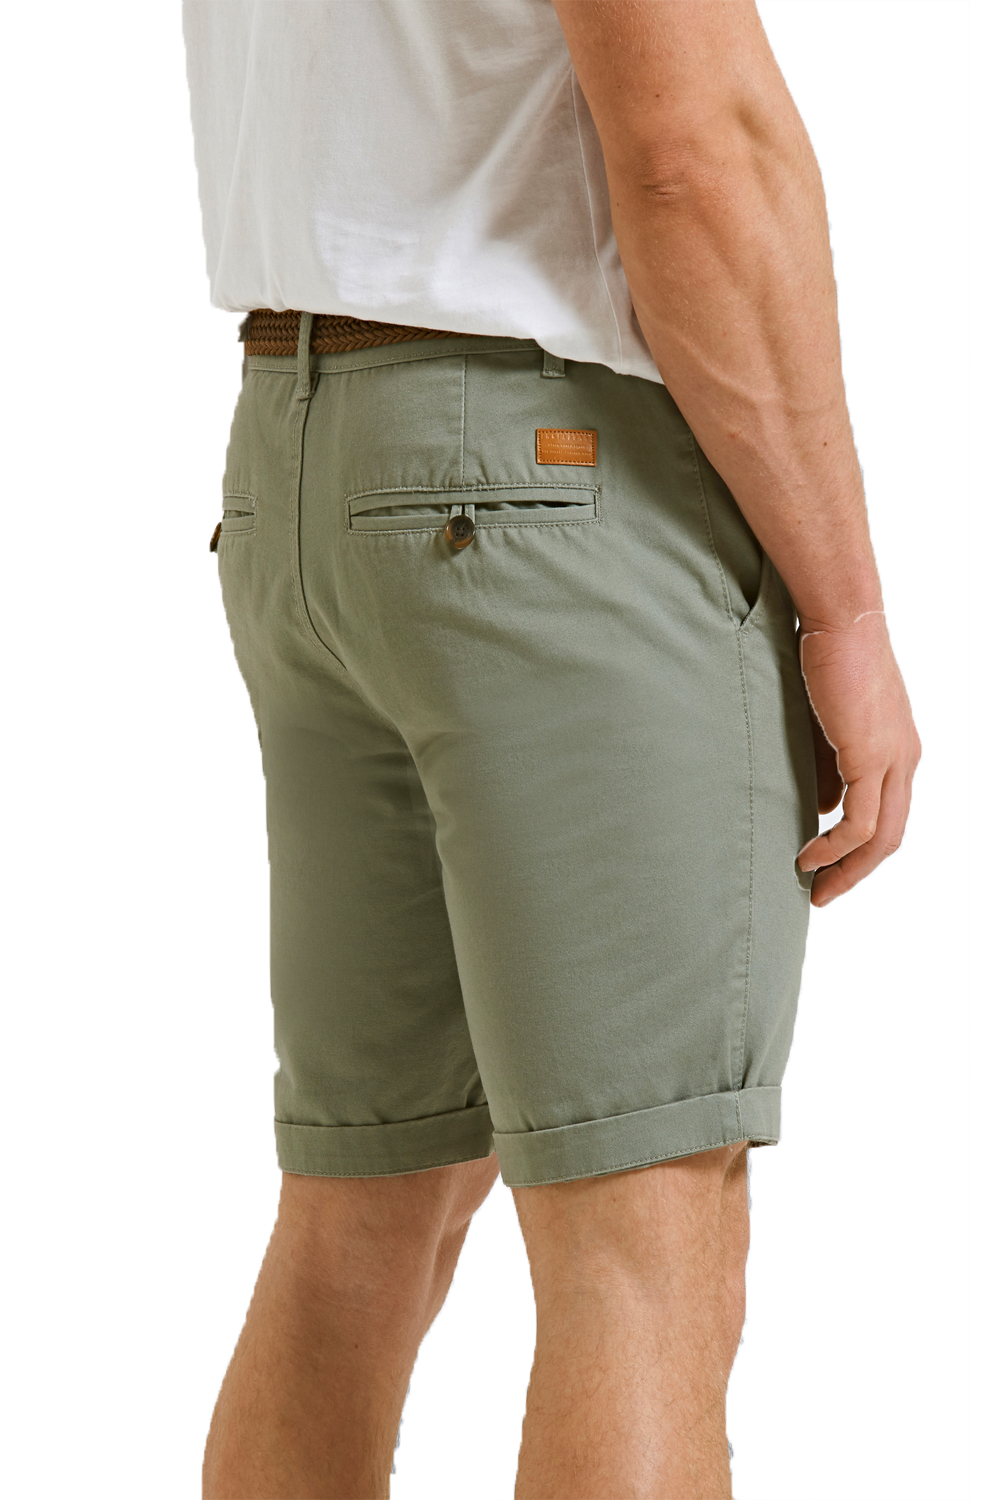 Threadbare-Mens-Slim-Fit-Belted-Chino-Shorts-Summer-Casual-Cotton-Smart-Bottoms thumbnail 19